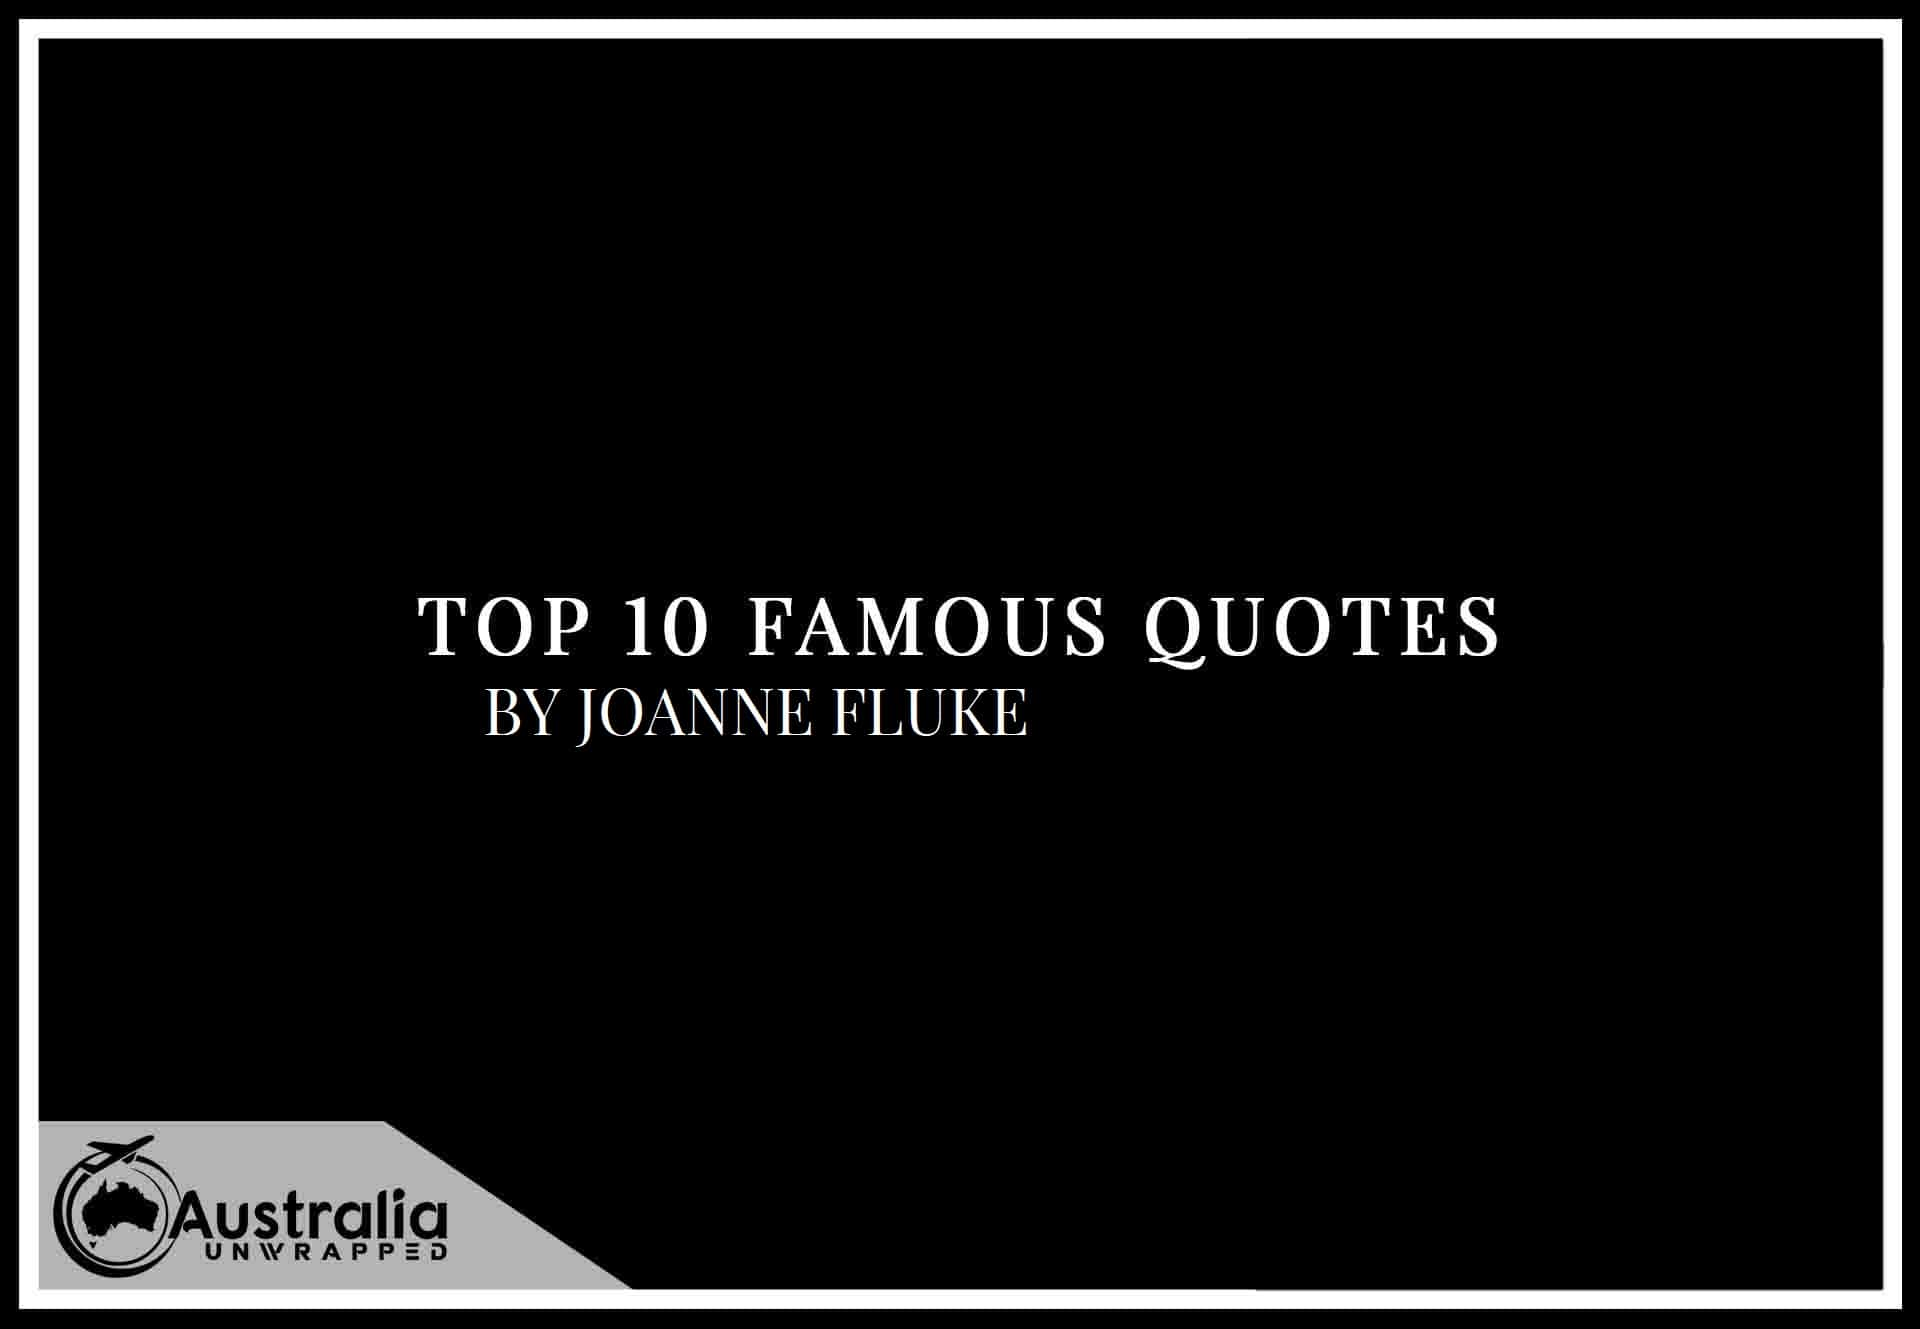 Top 10 Famous Quotes by Author Joanne Fluke